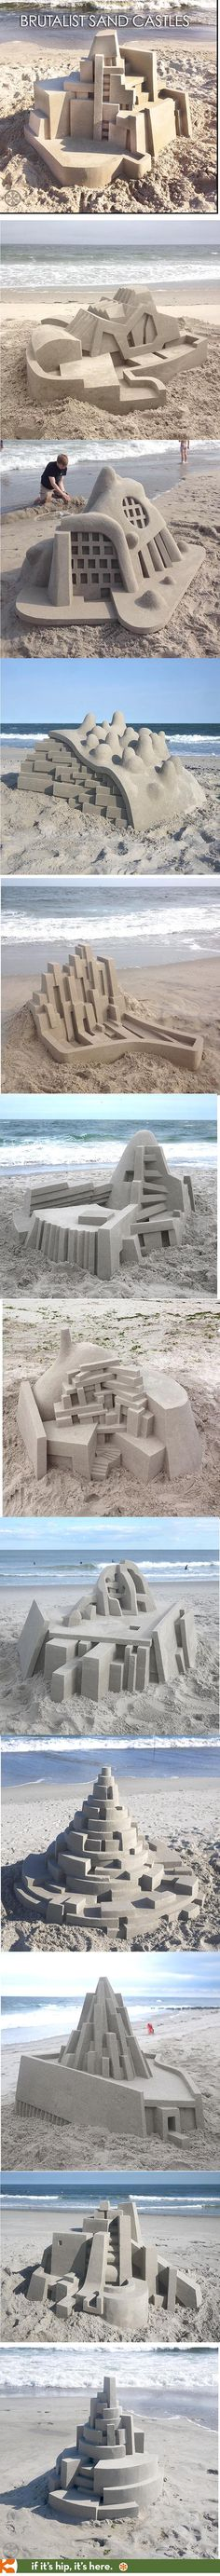 Incredible architectural sand castles inspired by Brutalism, Modernism and Constructivism. More at the link.